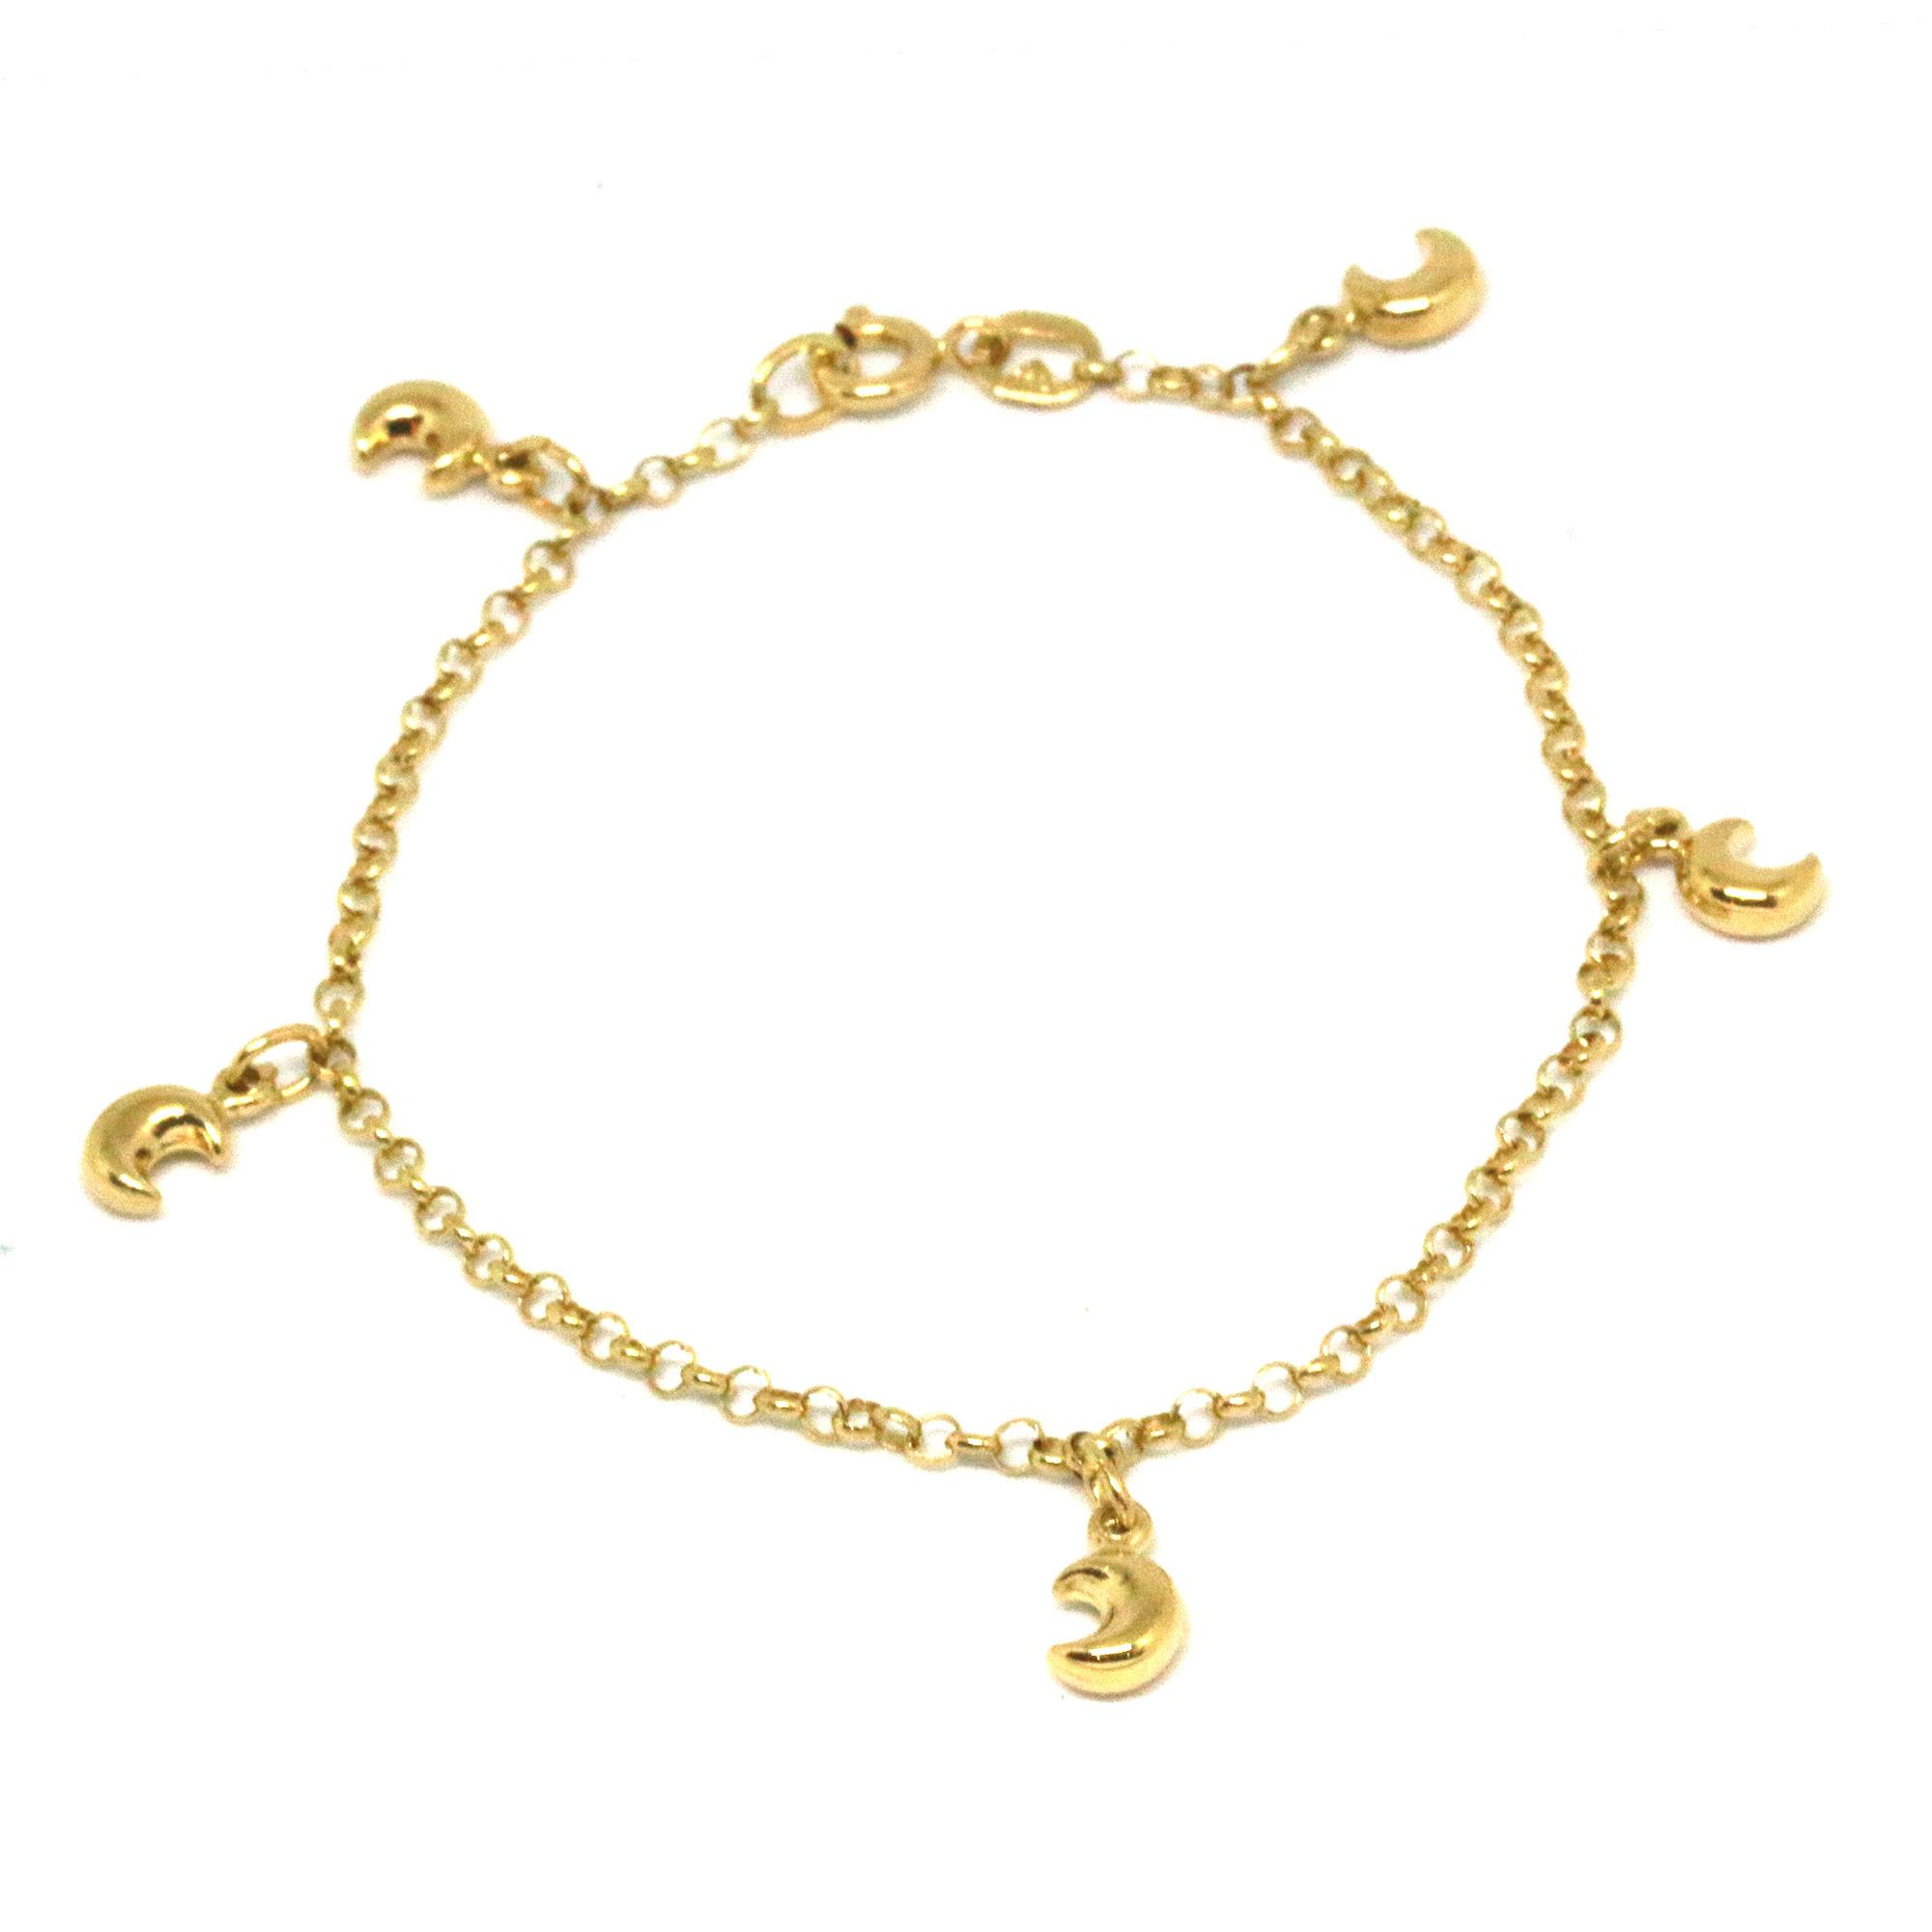 overstock jewelry shipping figaro product free inches k flat yellow high karat anklet gold watches fremada polish today